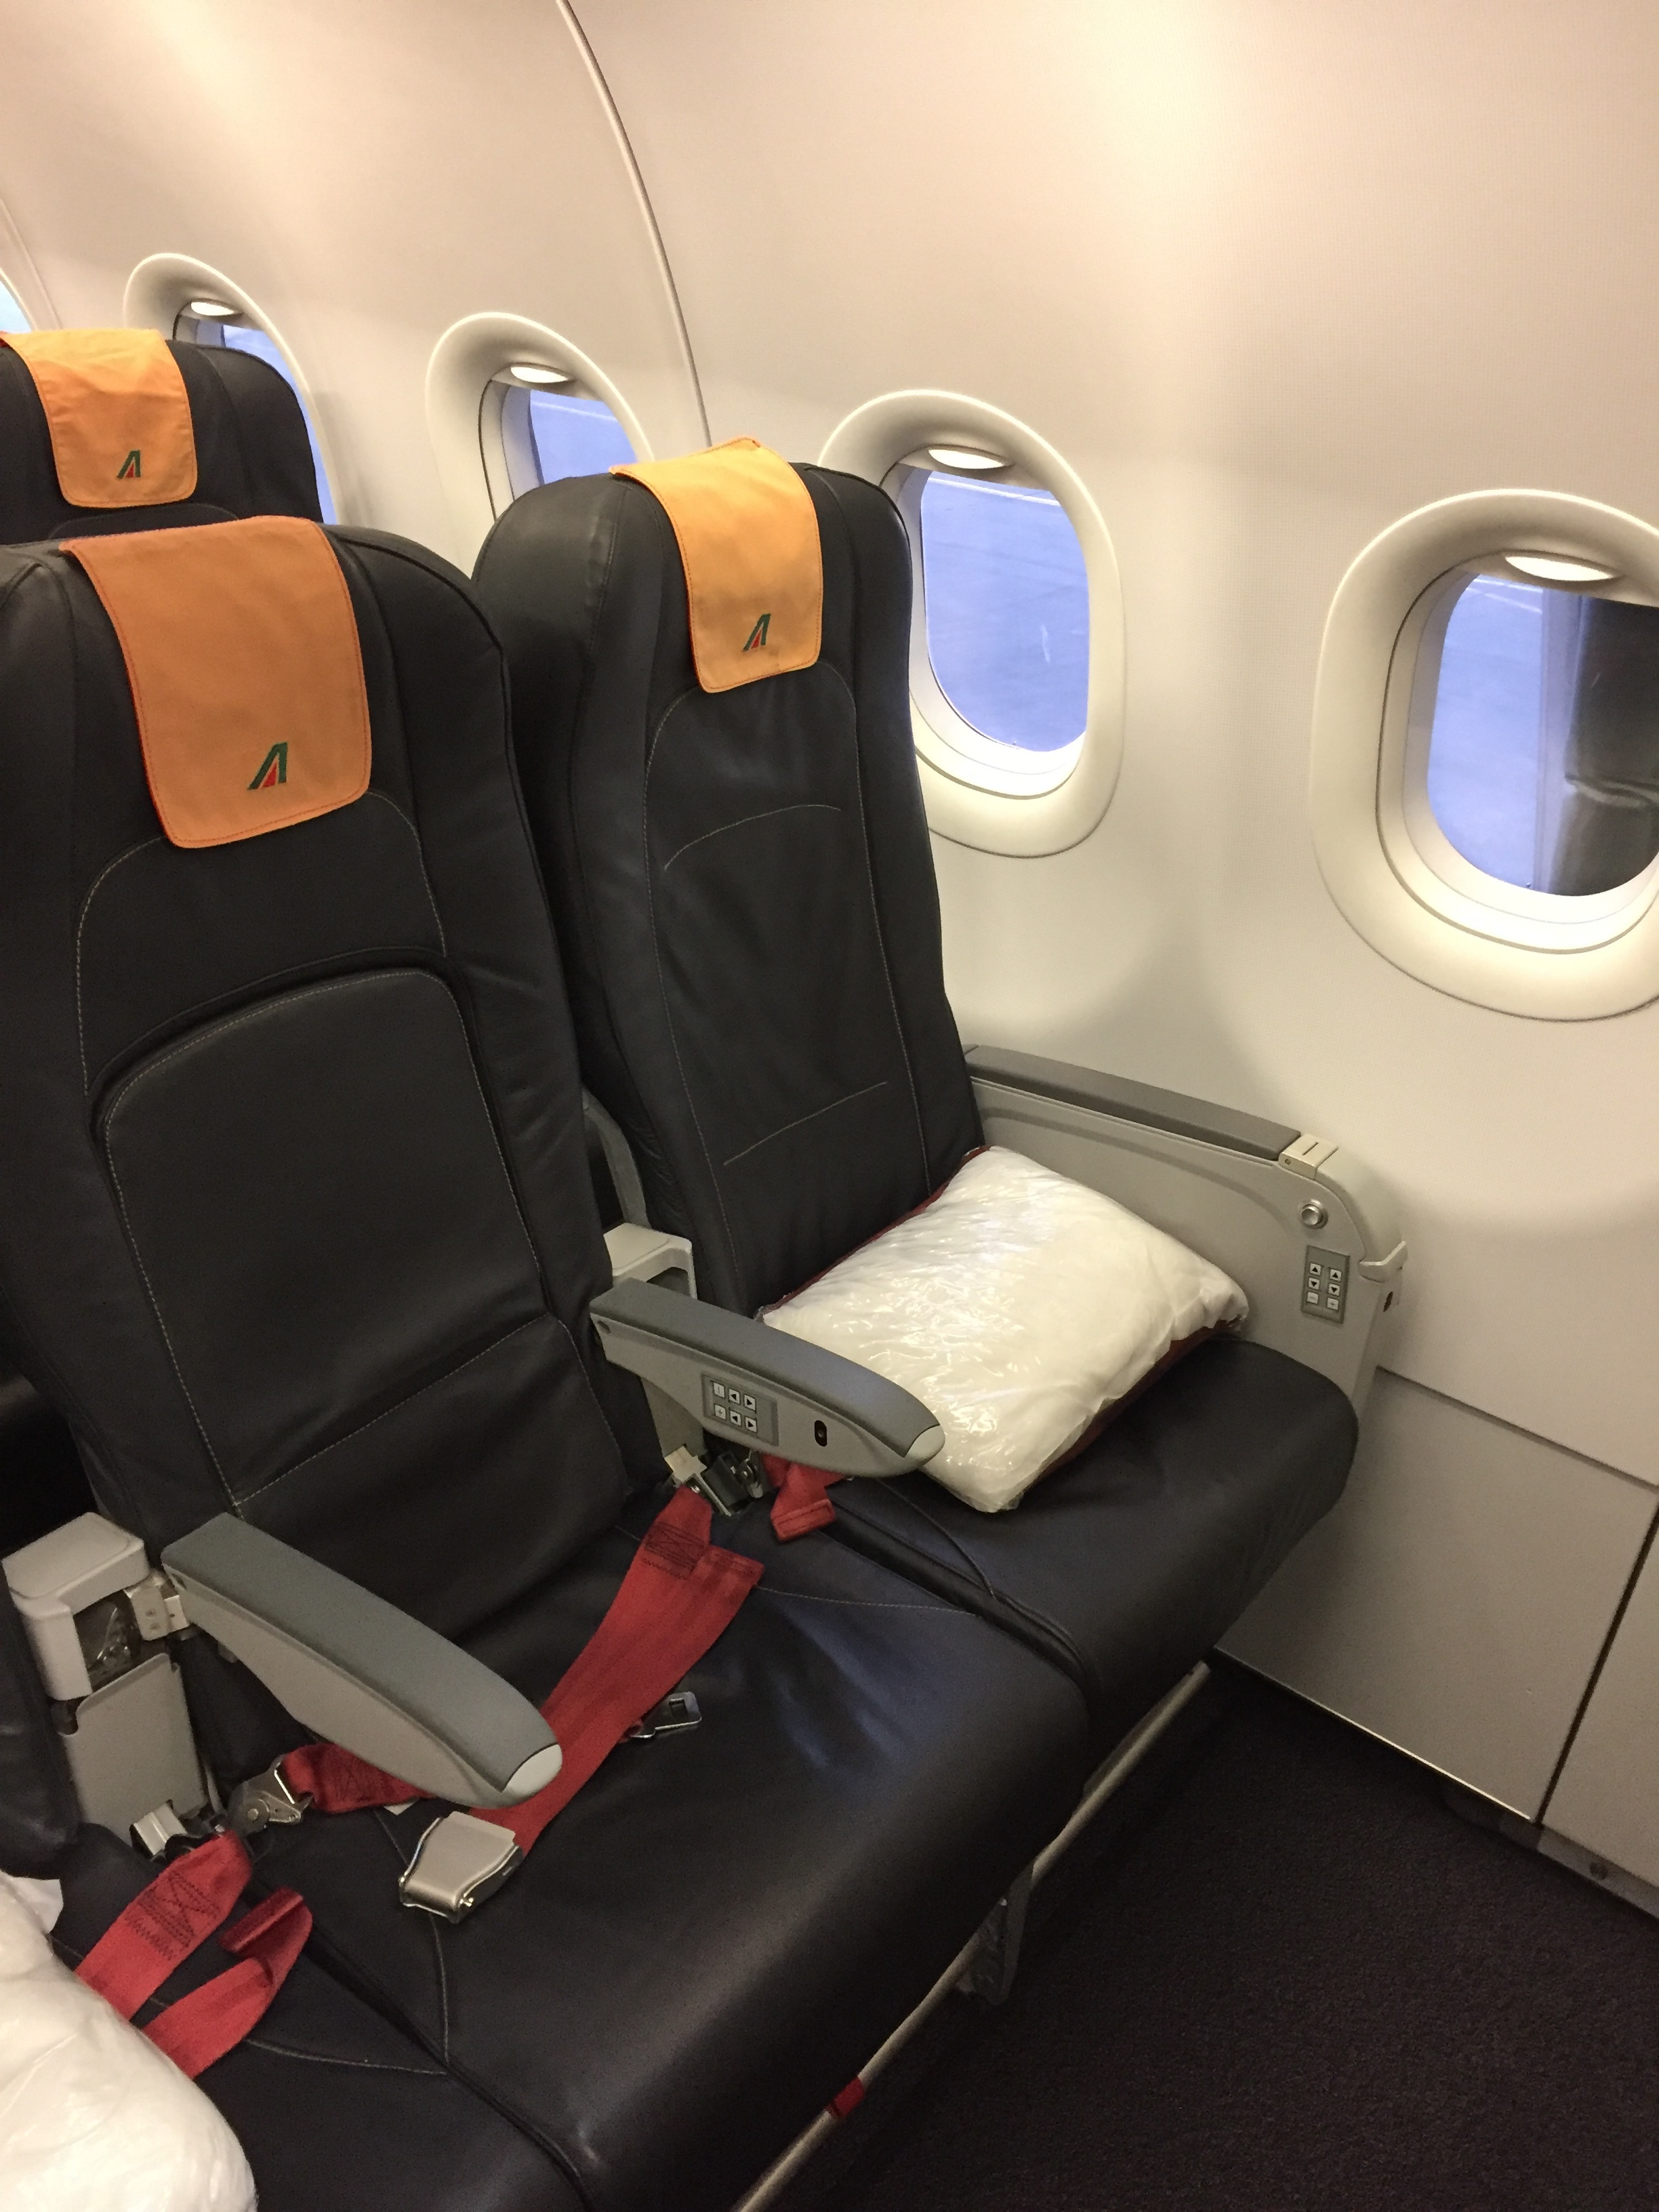 These are Alitalia's business class seats